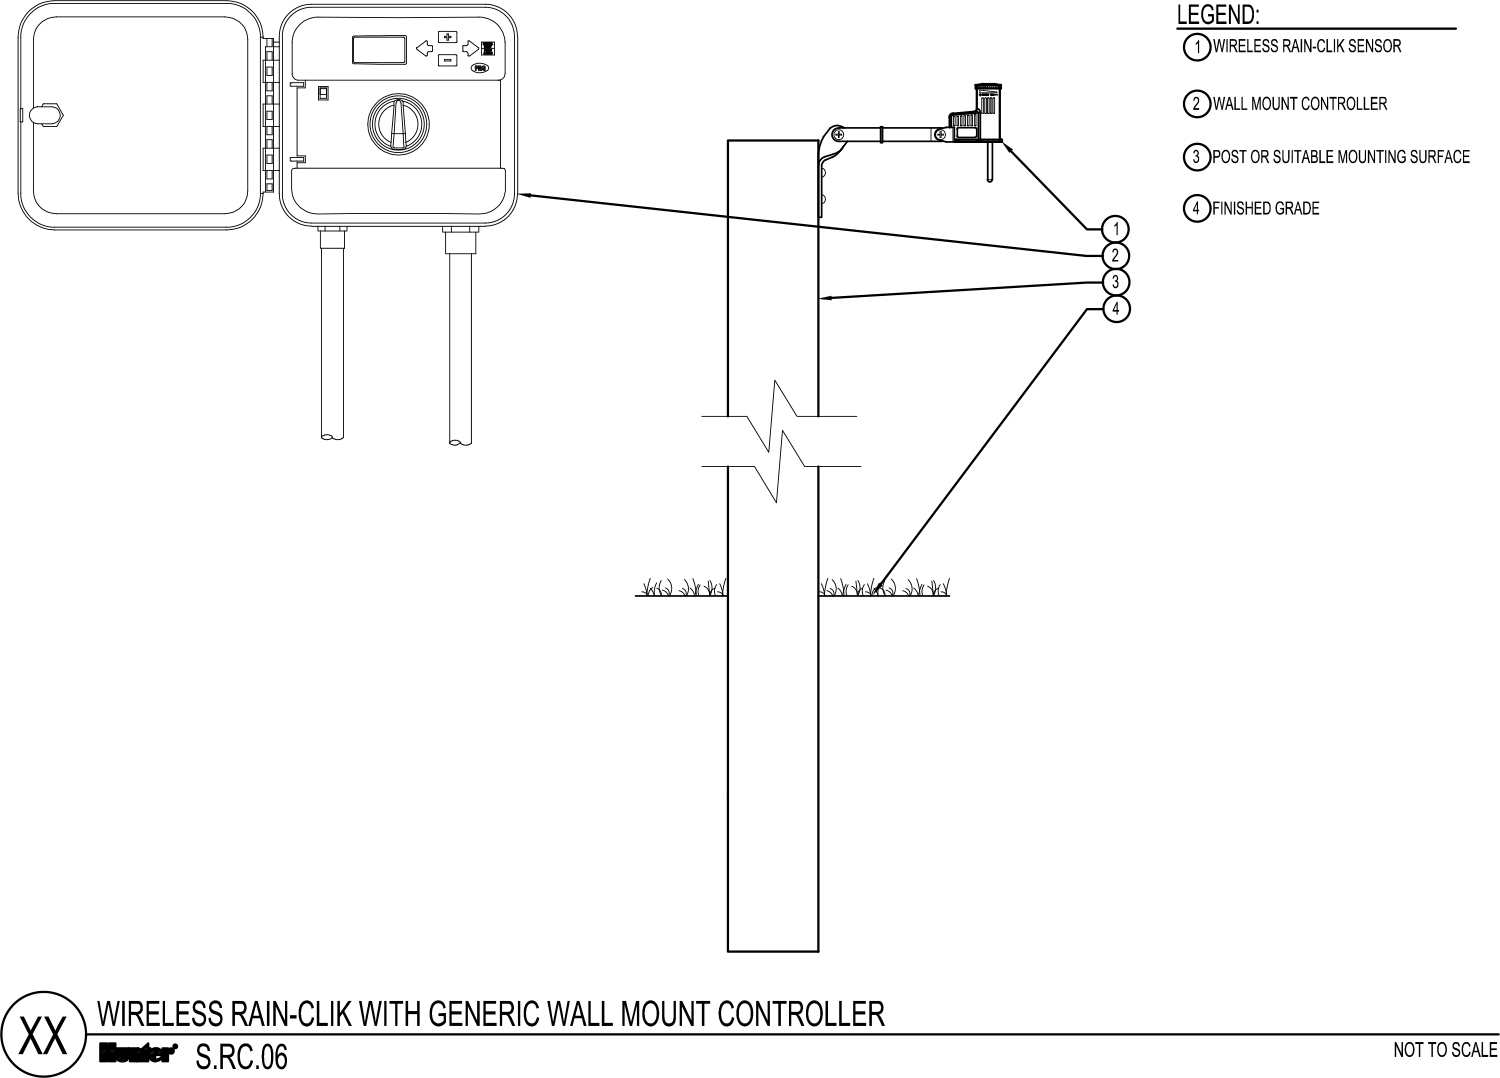 CAD - Wireless Rain-Clik with Generic Wall Mount Controller